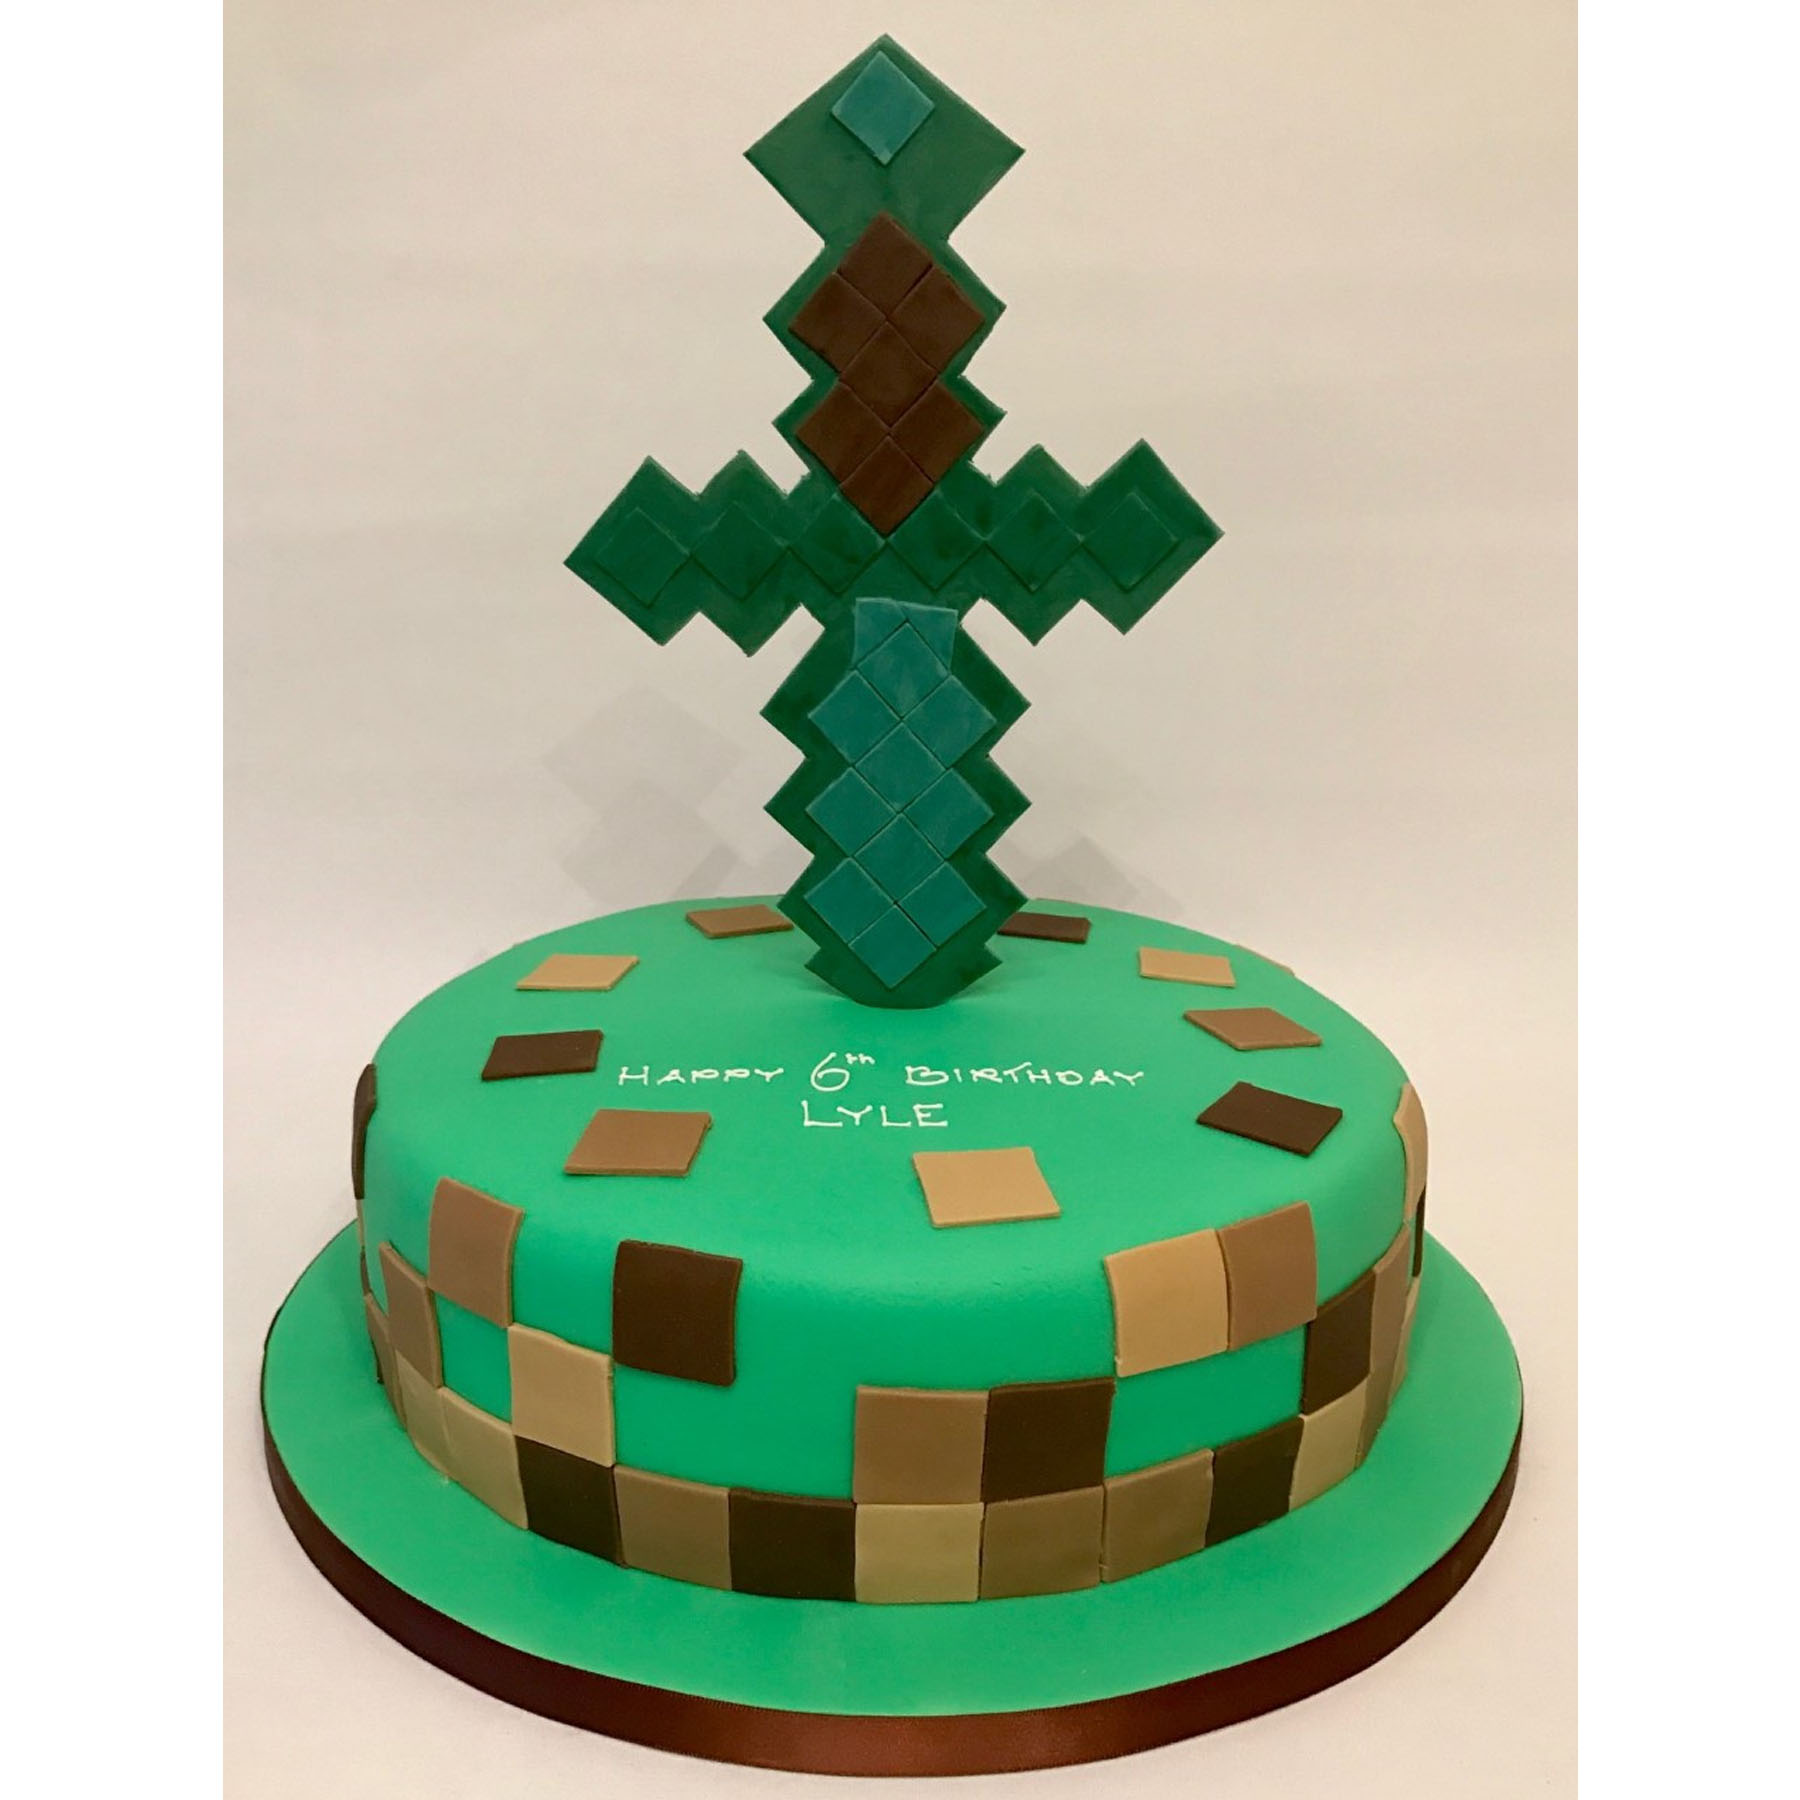 Enjoyable Minecraft Birthday Cake Anns Designer Cakes Funny Birthday Cards Online Fluifree Goldxyz